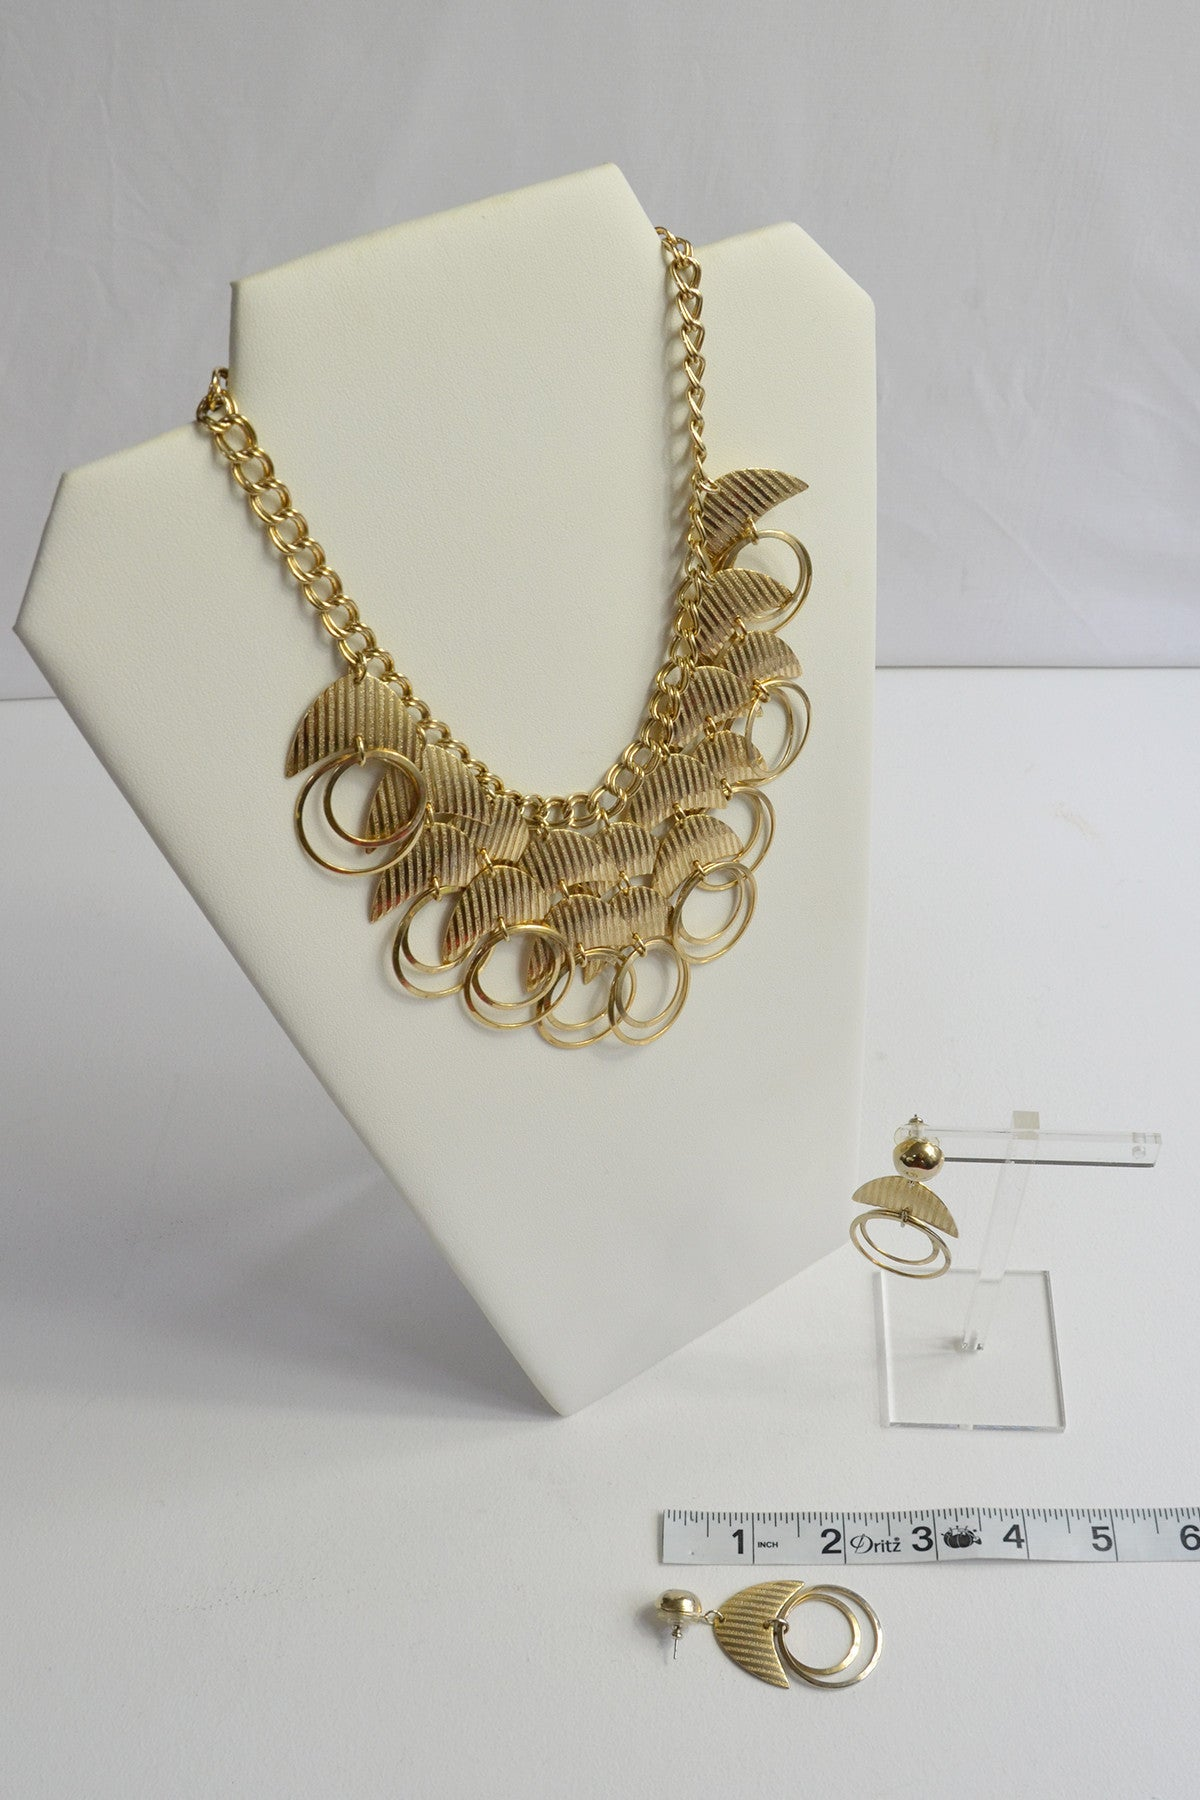 Vintage 1970s Gold Tone Crescent Moon and Open Rings Necklace and Earrings